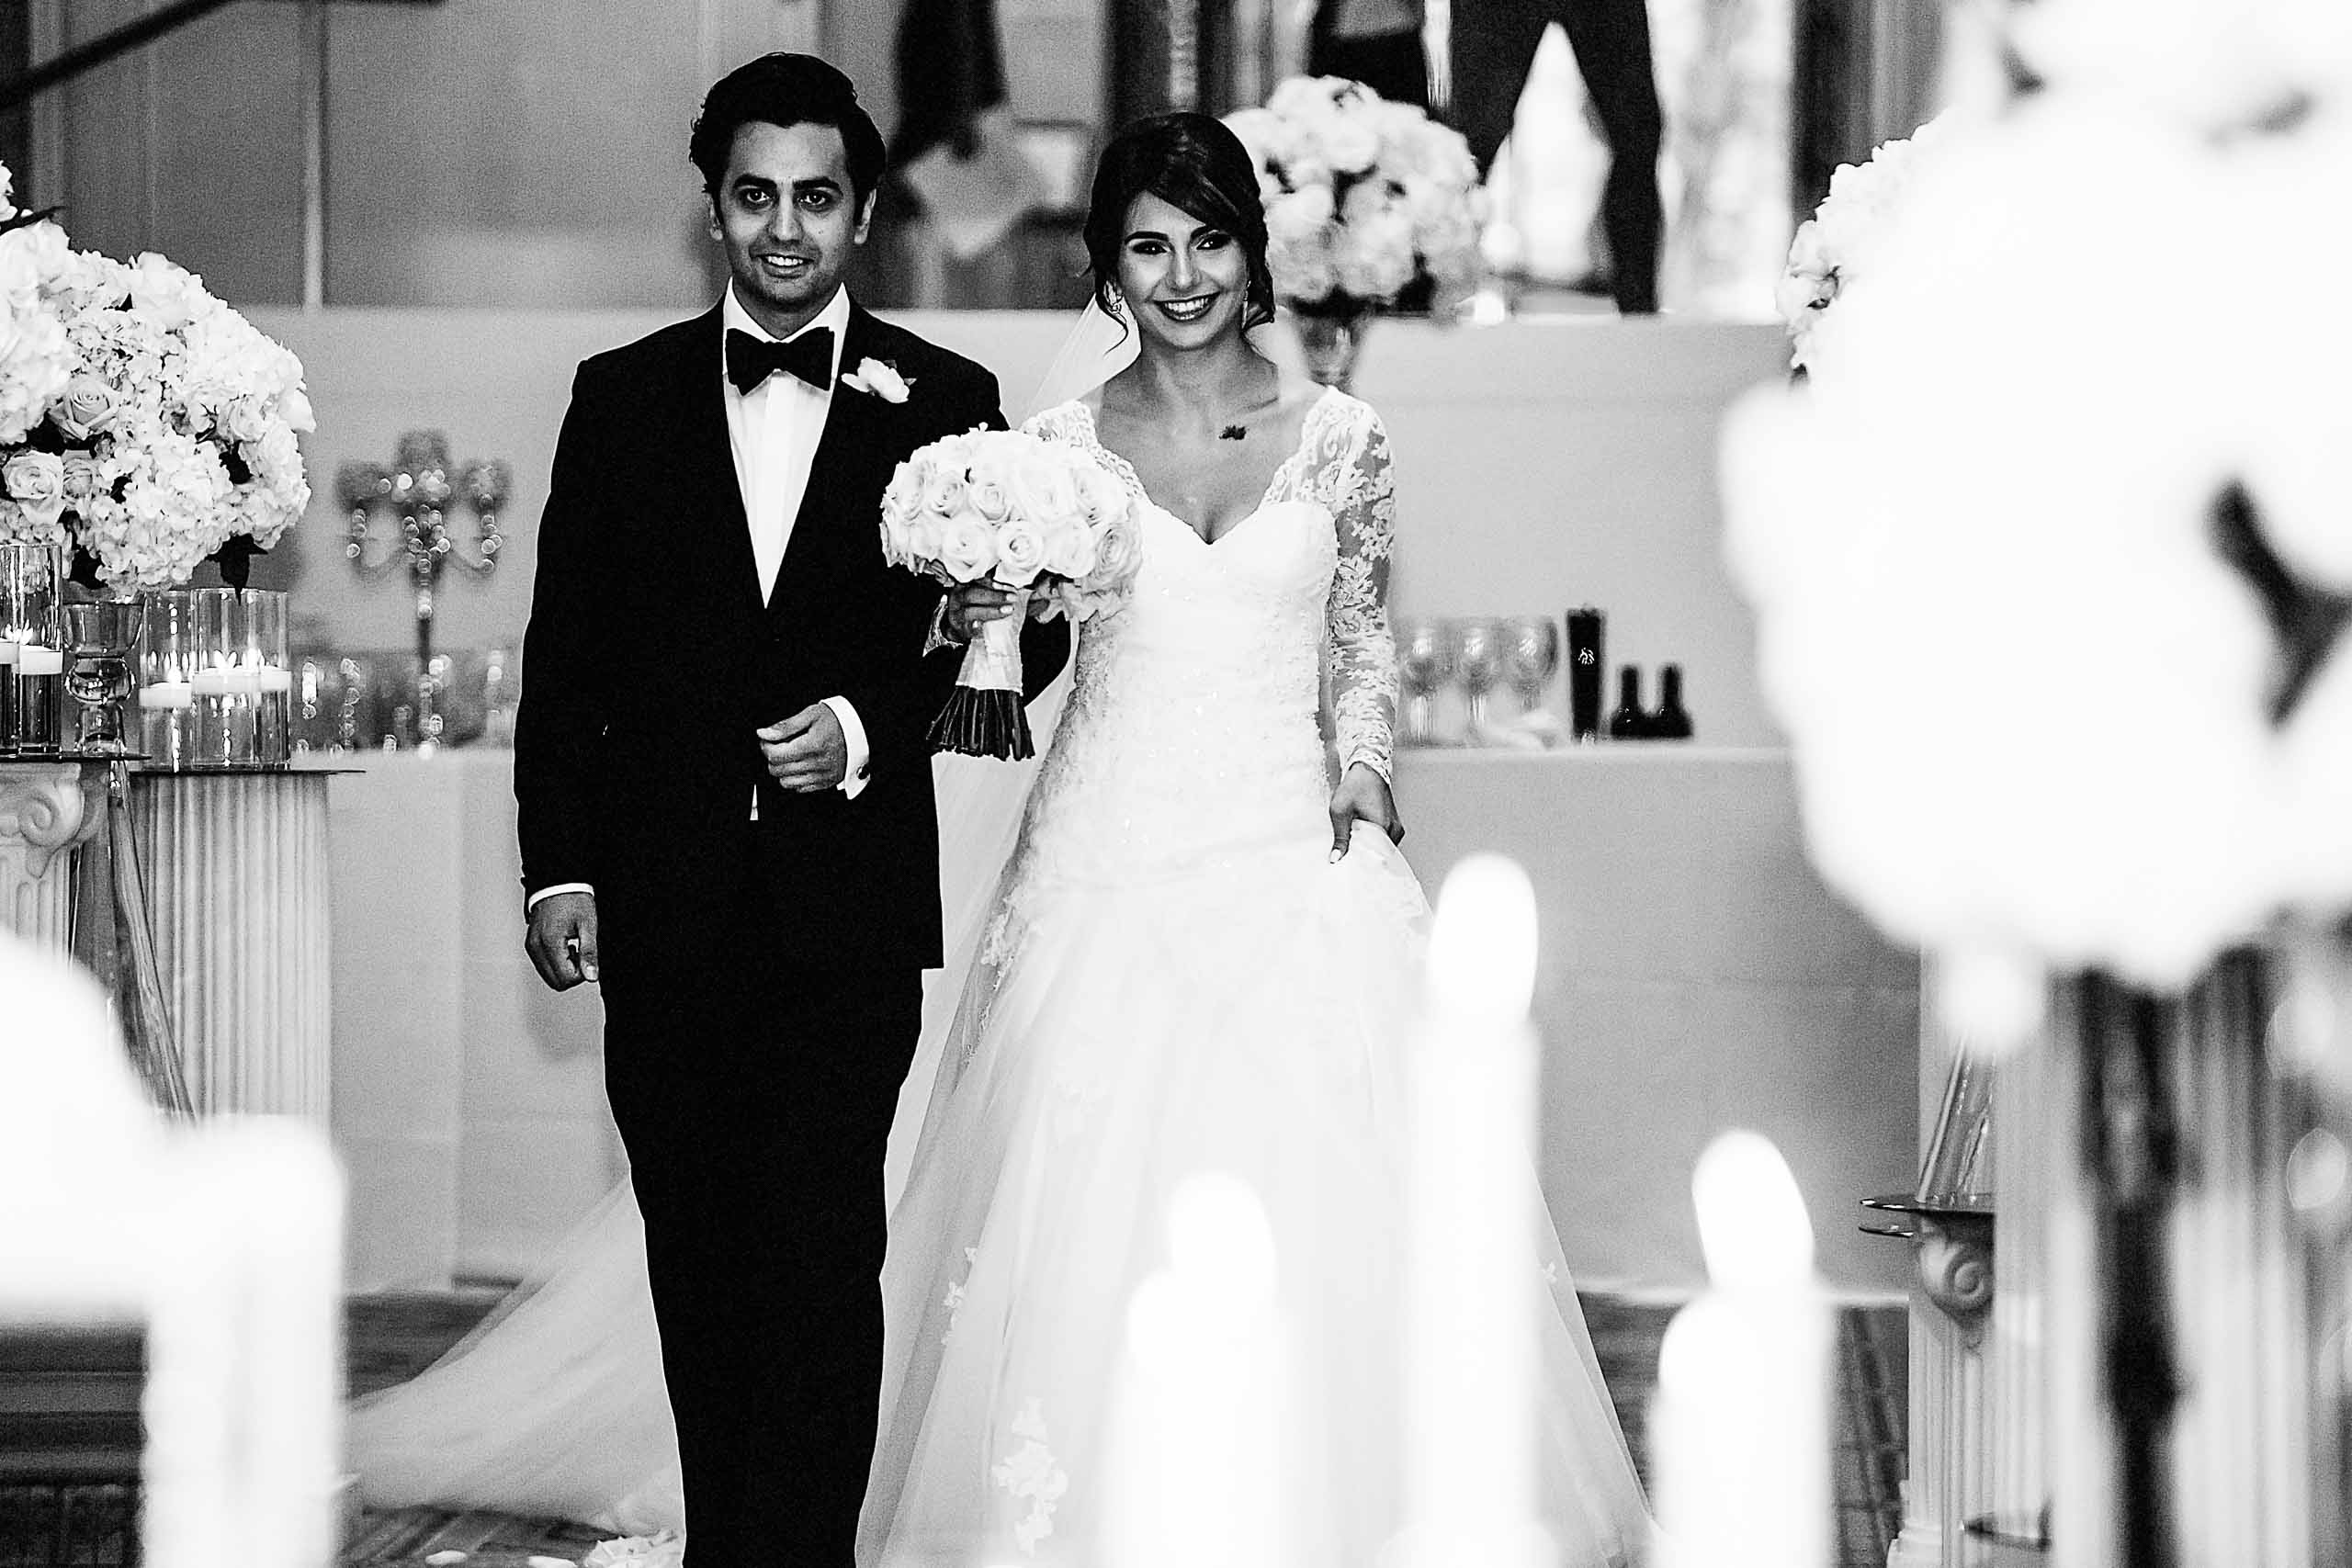 A bride and groom walking into their Portland Persian wedding ceremony at the Portland Art Museum